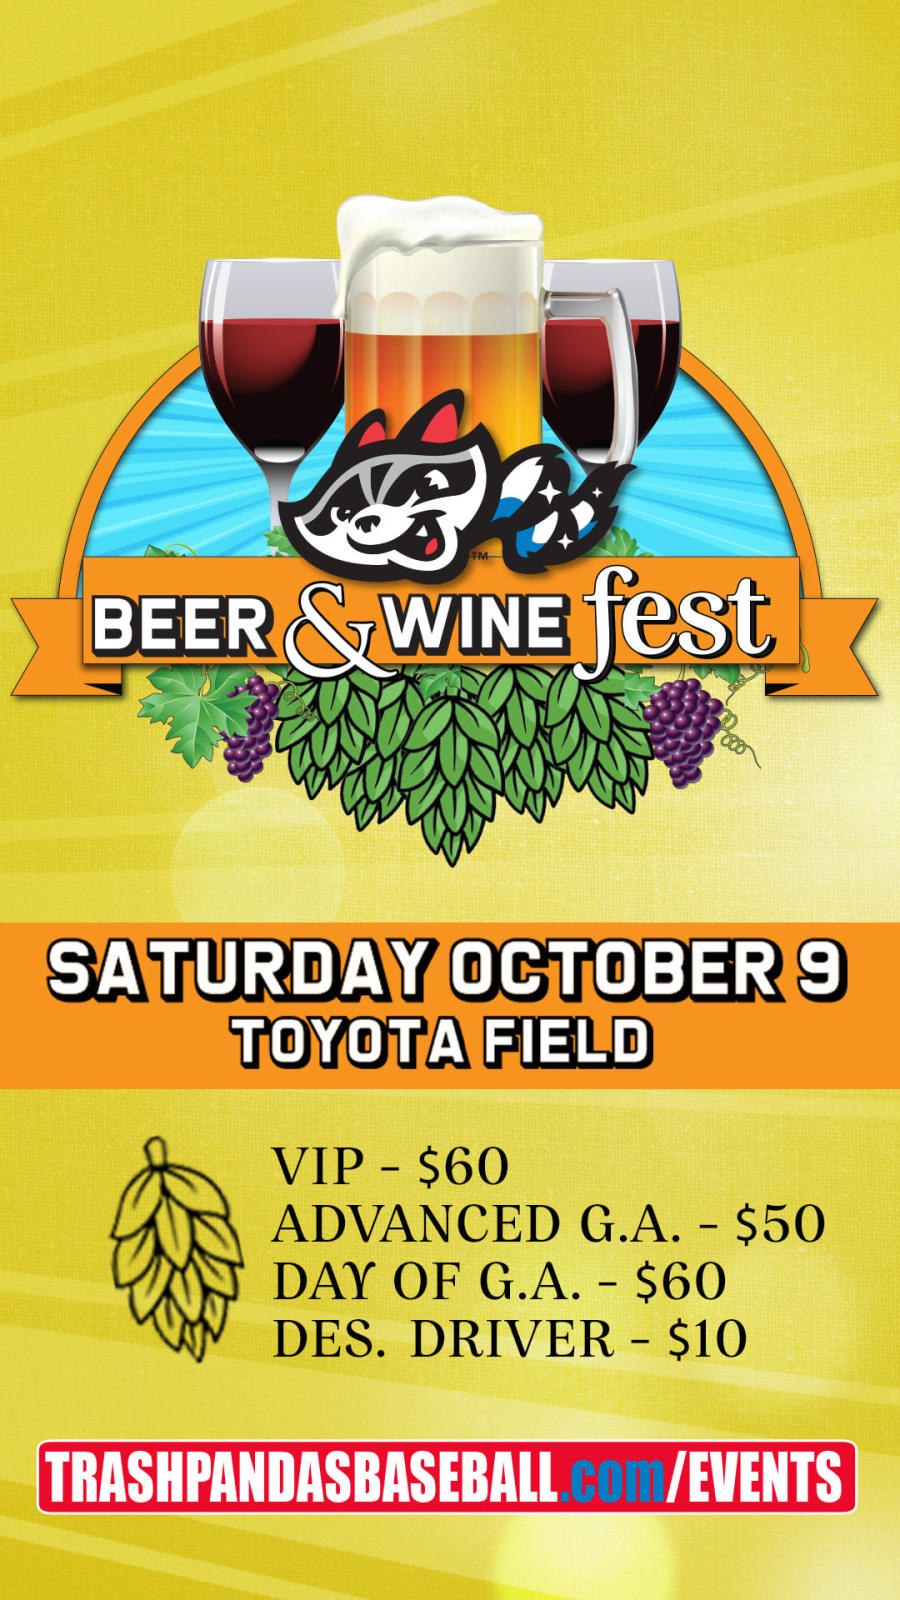 Beer and win fest toyota field